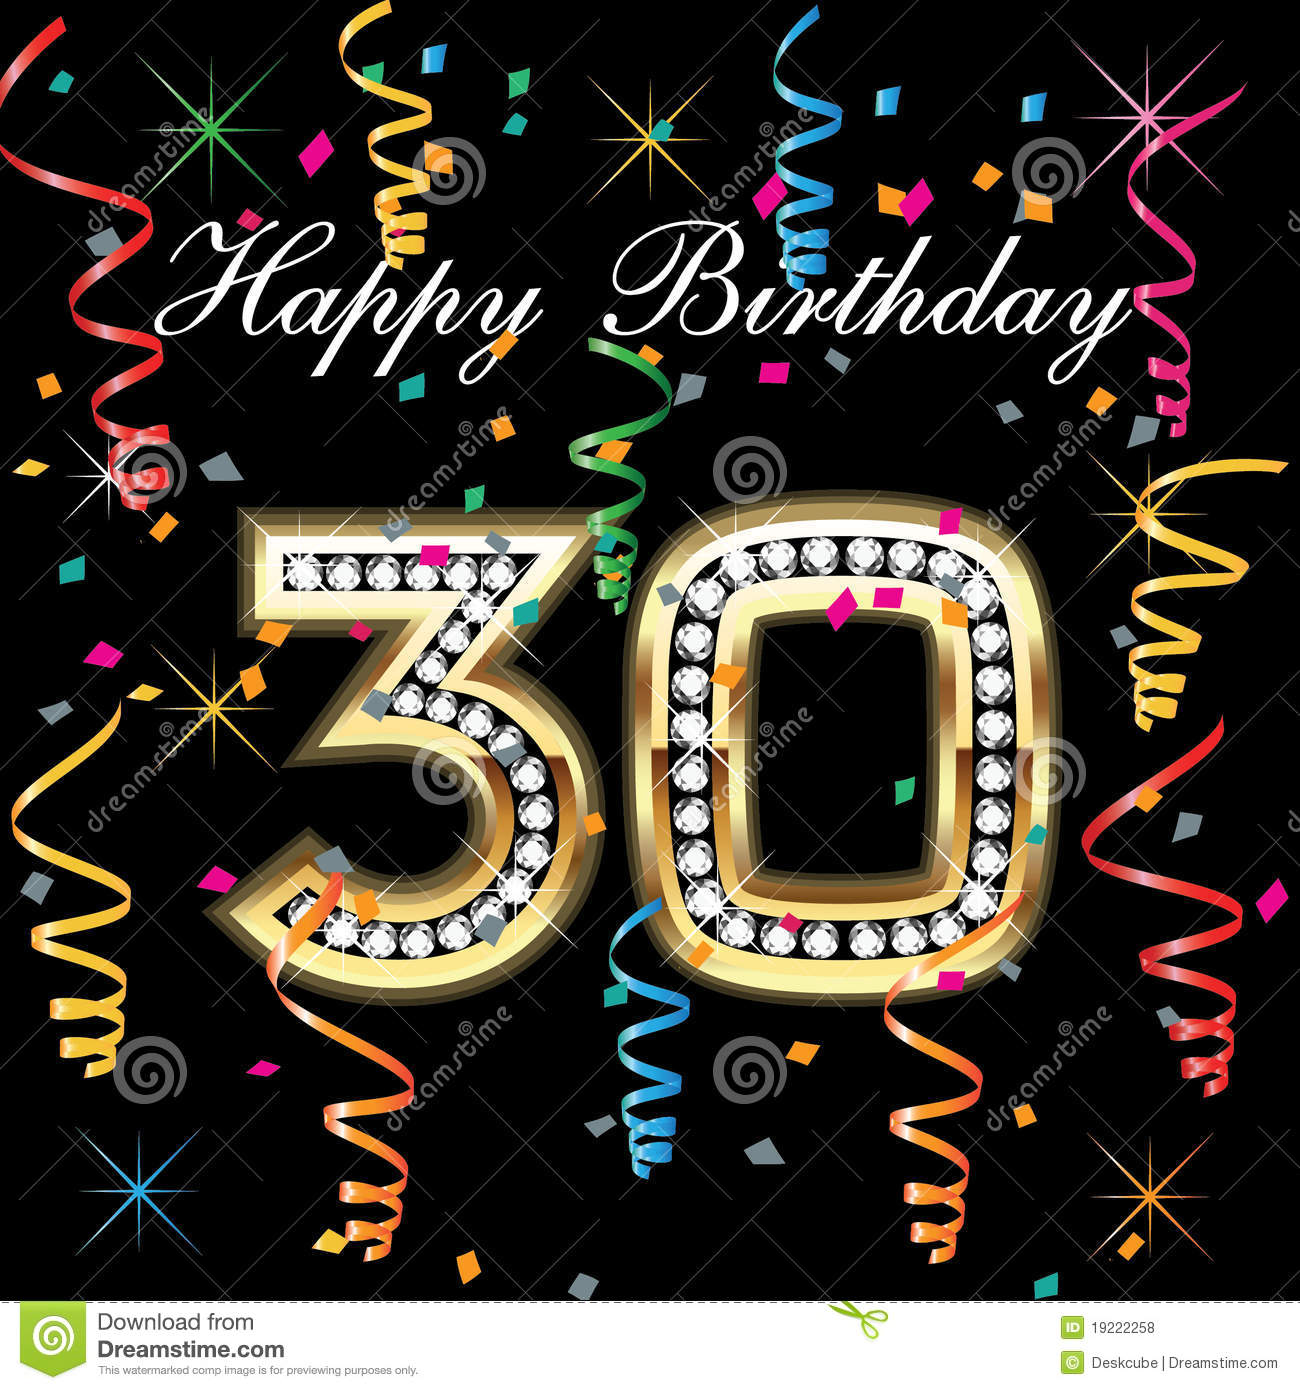 Happy Birthday 30 Royalty Free Stock Photos - Image: 19222258